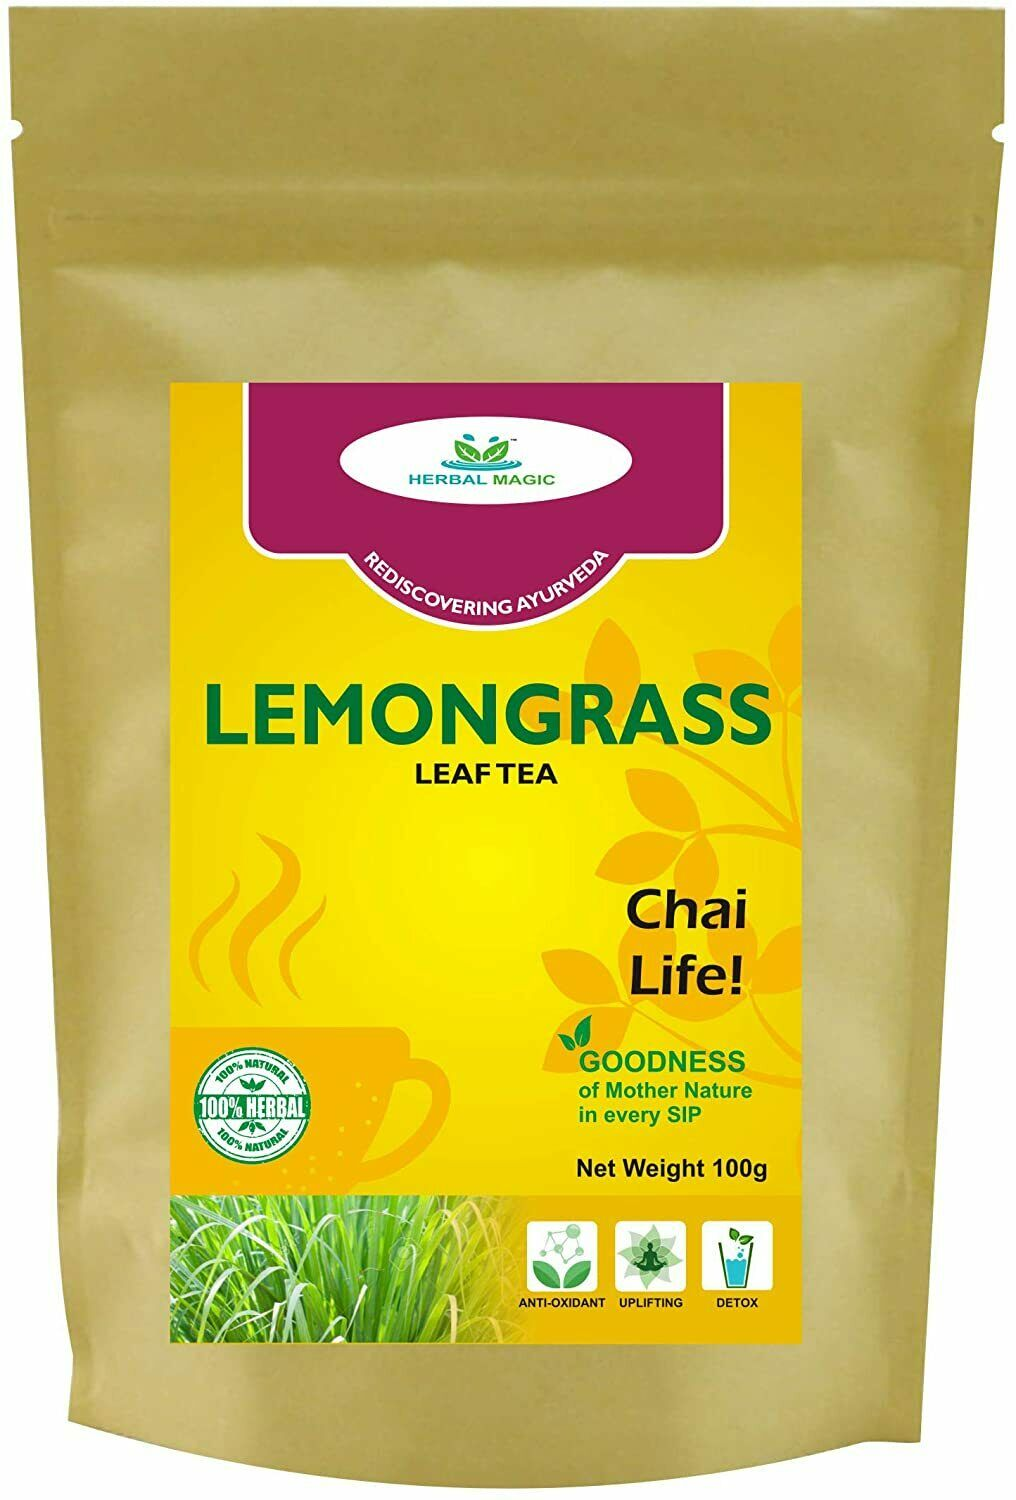 Lemongrass Herbal Tea Cuts Pleasant Flavour Resealable Air-Tight Locking PackListed for charity